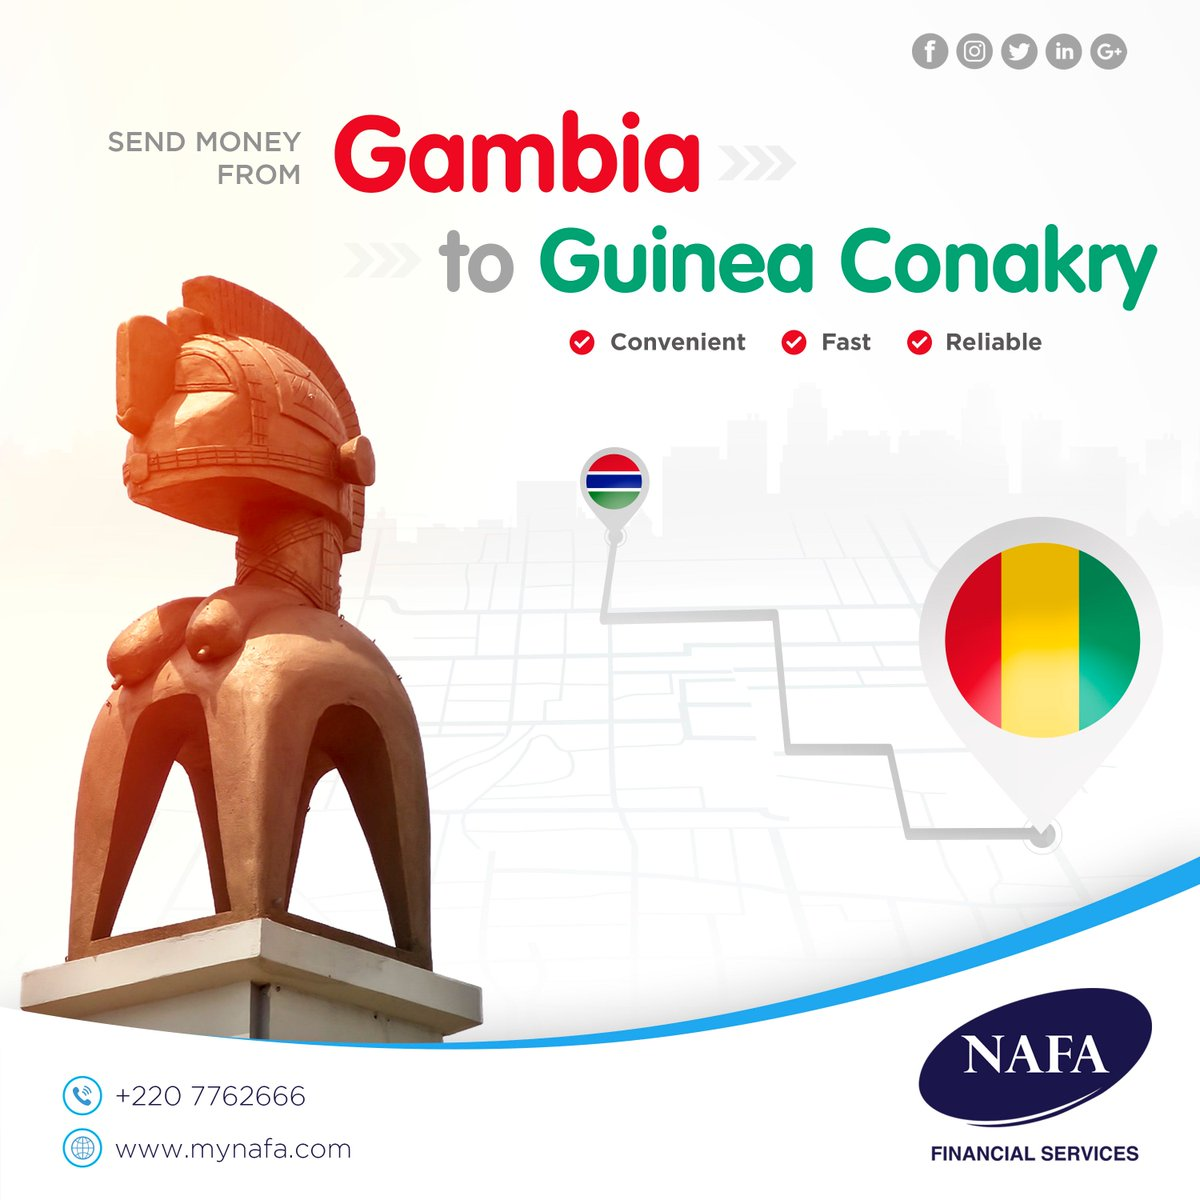 Way To Send Money From Gambia Guinea Conakry Contact Nafa Financial Services 2207762666 We Offer Great Rates And Exceptional Service